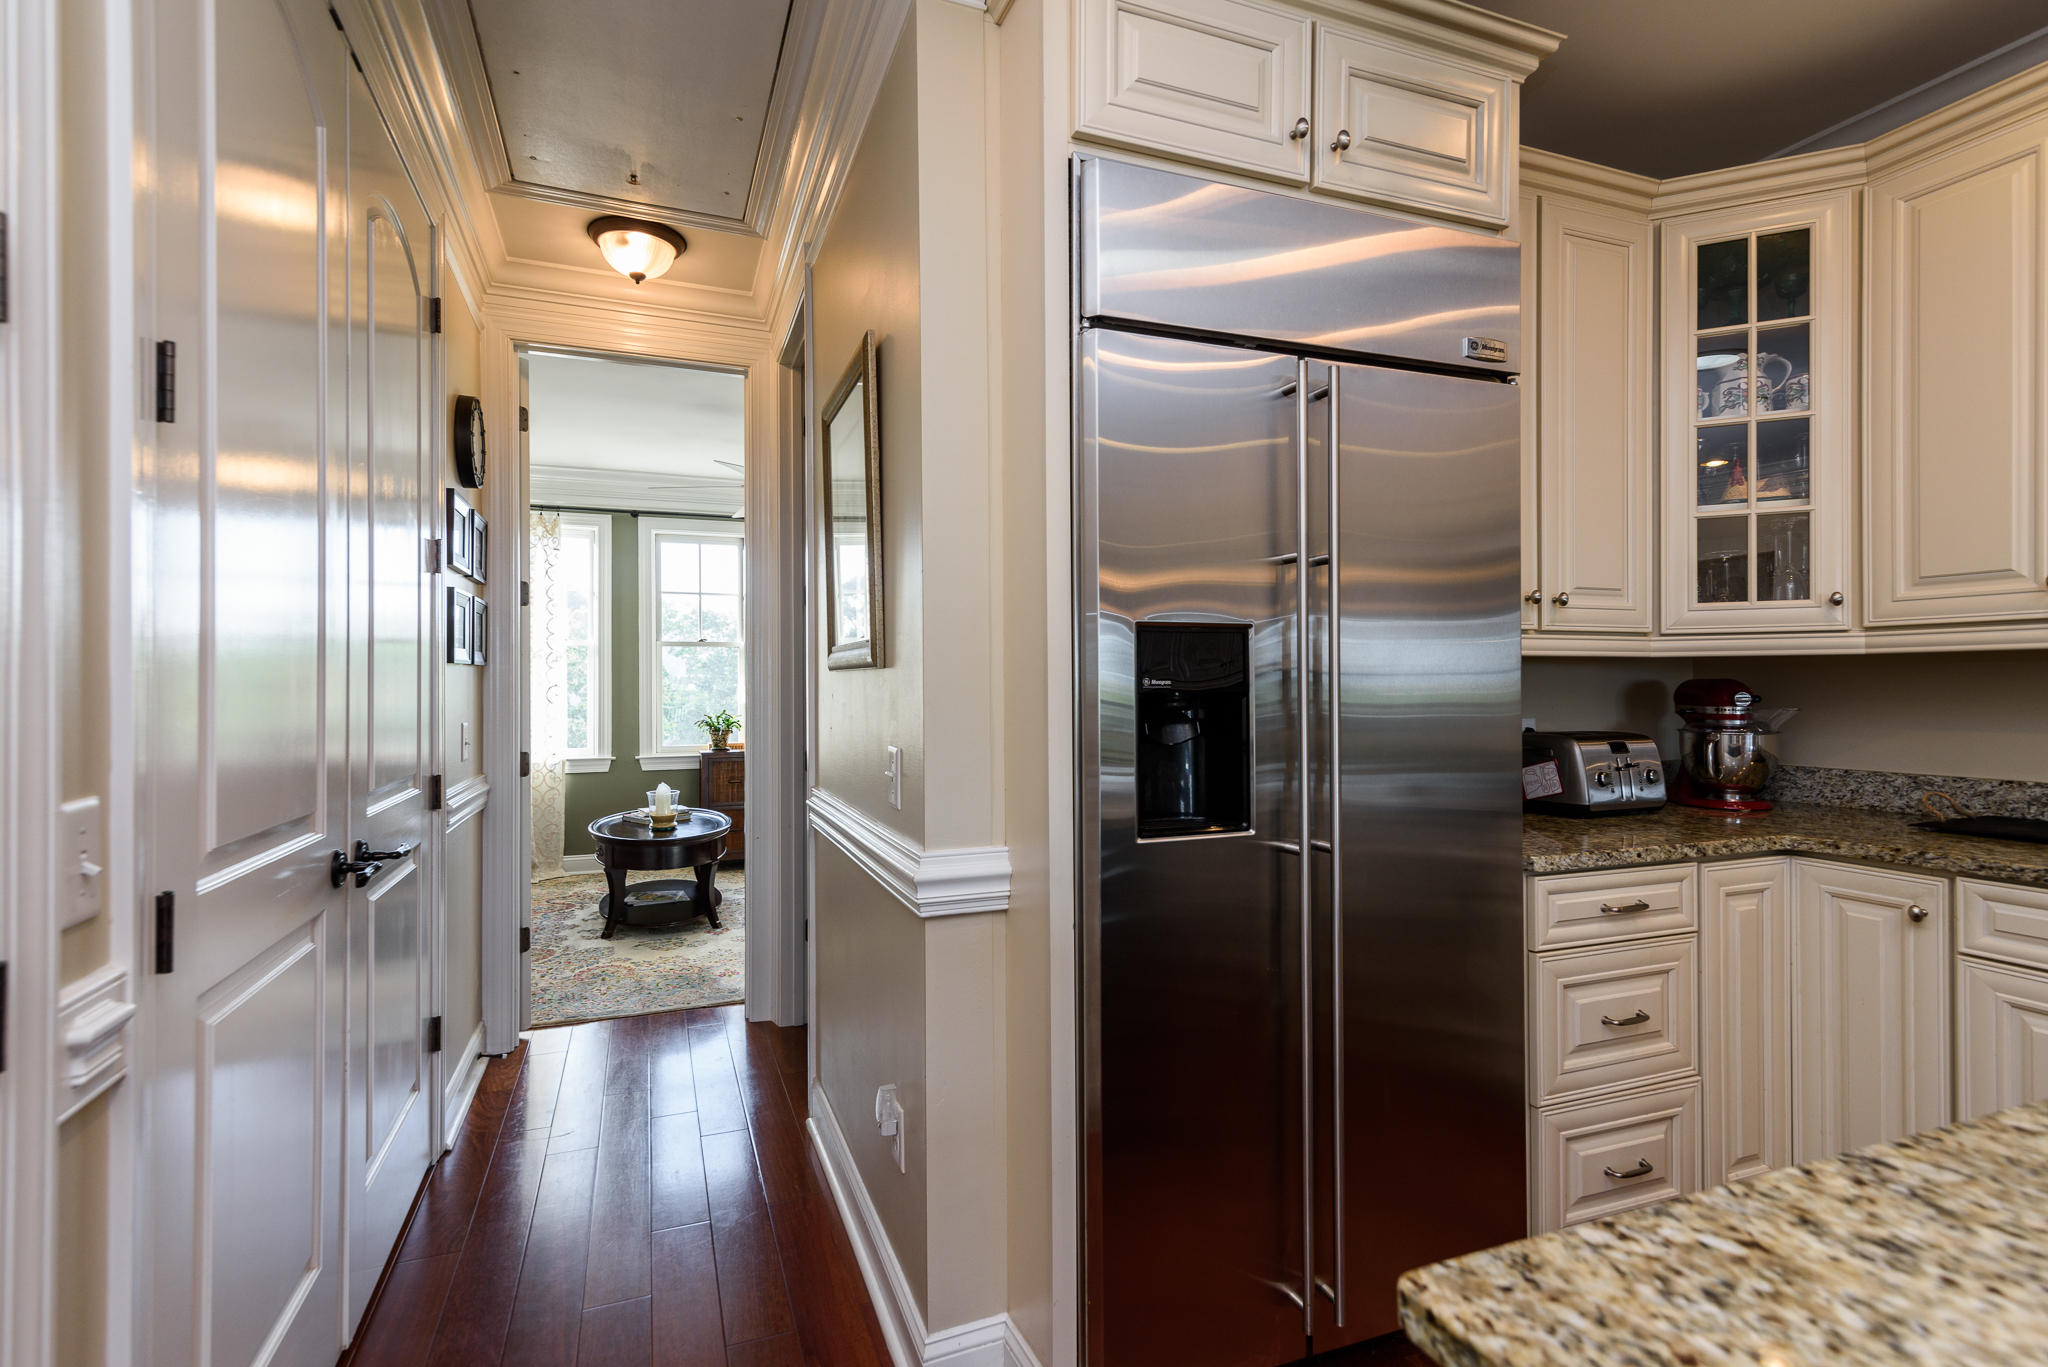 Sawyer's Landing Homes For Sale - 977 Cove Bay, Mount Pleasant, SC - 6